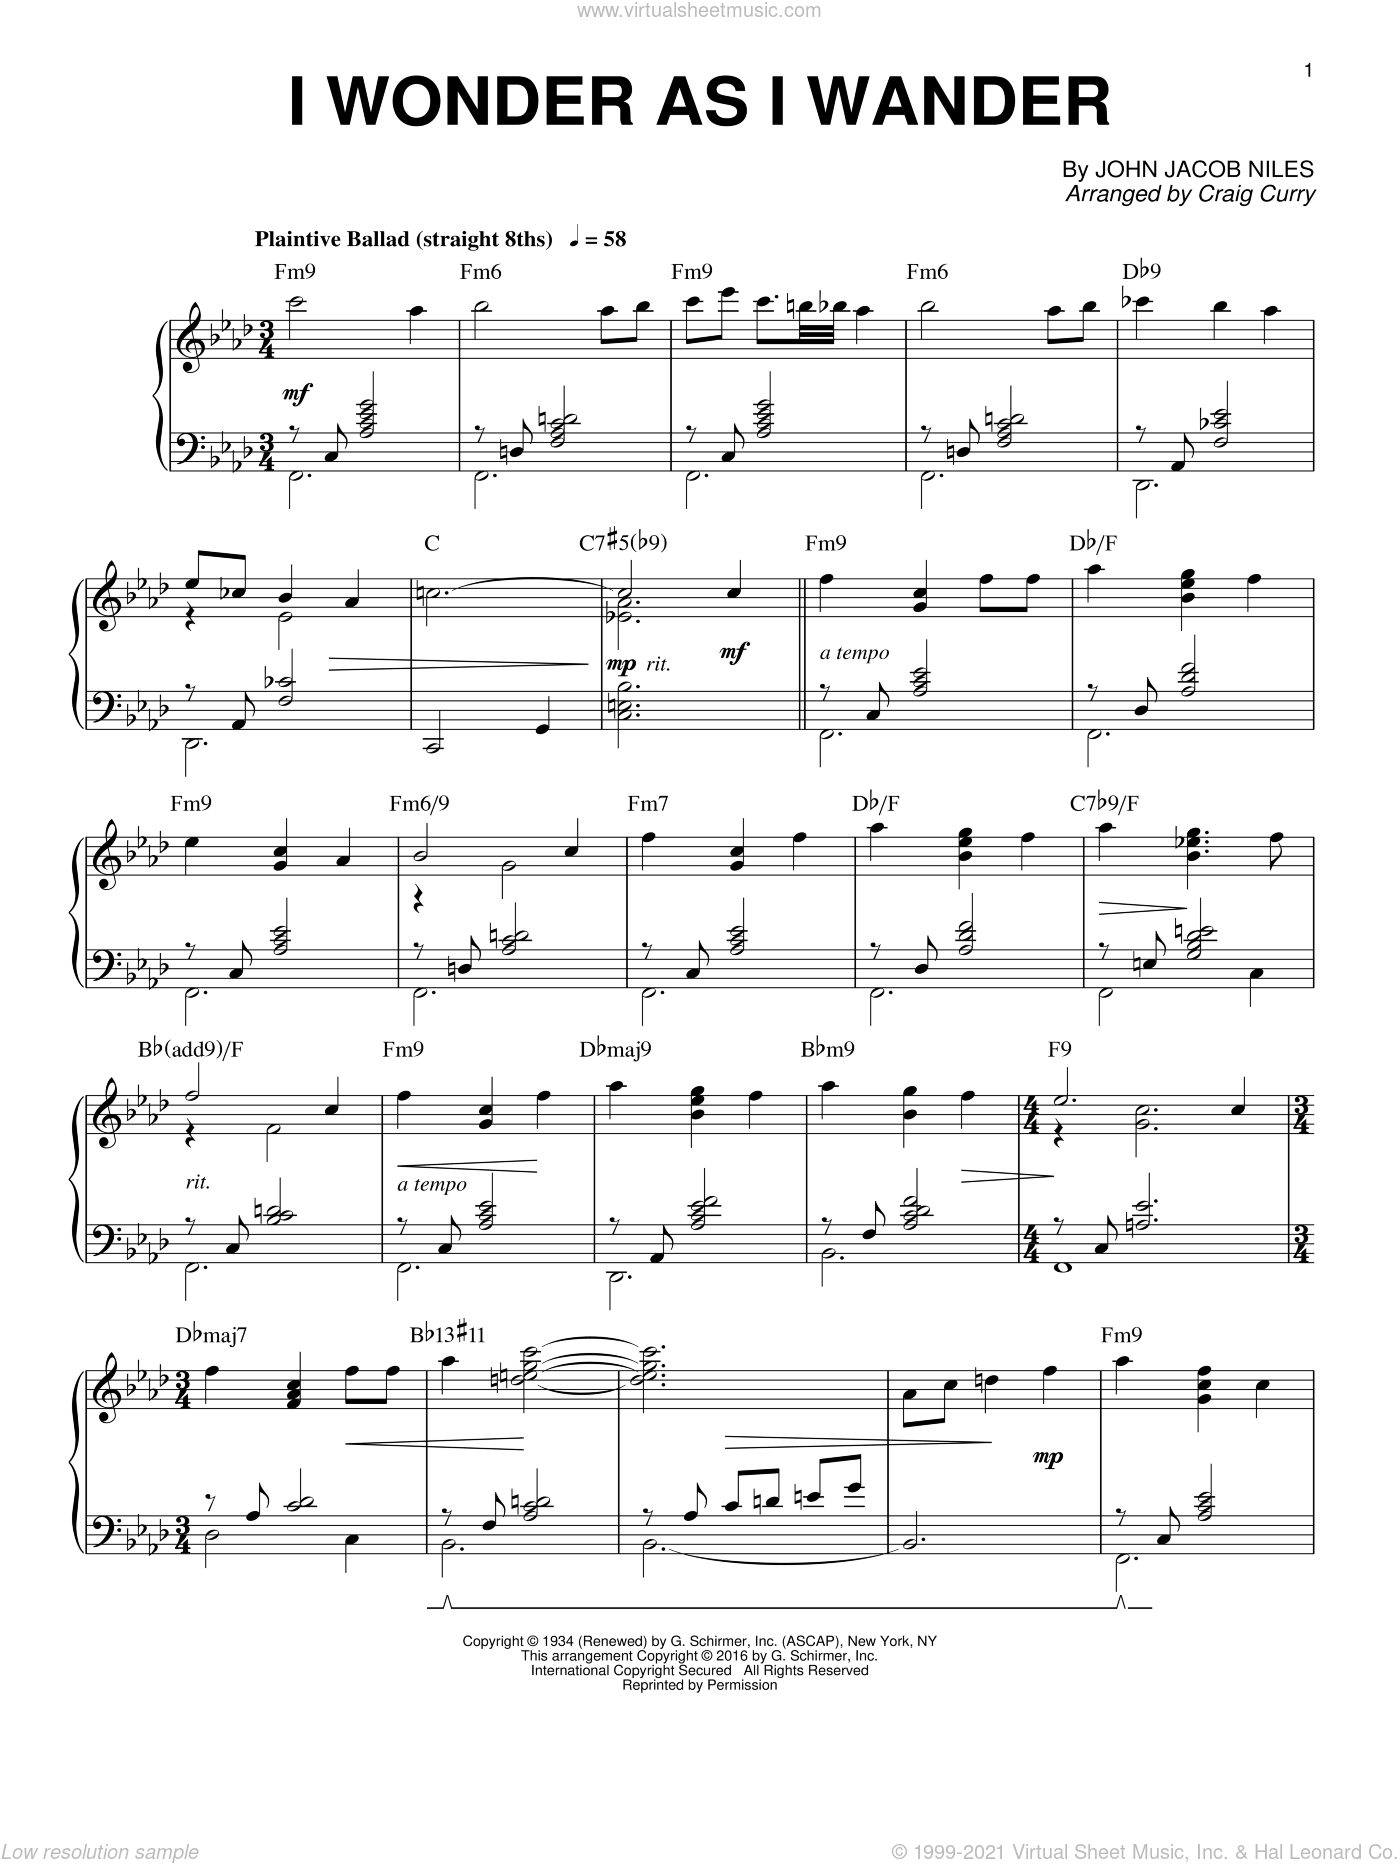 I Wonder As I Wander, (intermediate) sheet music for piano solo by John Jacob Niles and Craig Curry, intermediate skill level